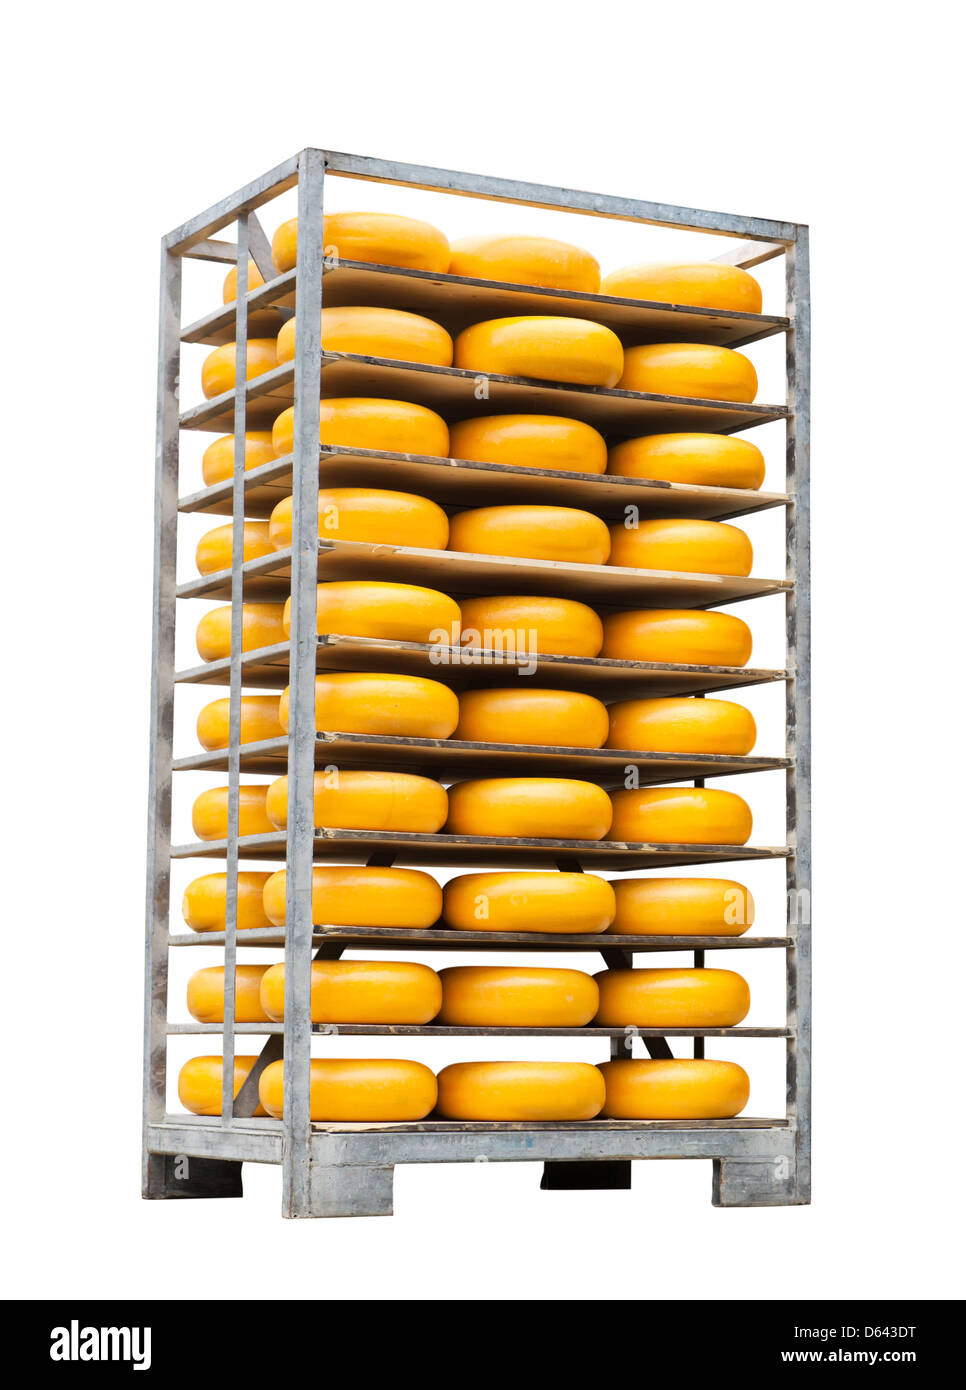 Pallet with cheese - Stock Image